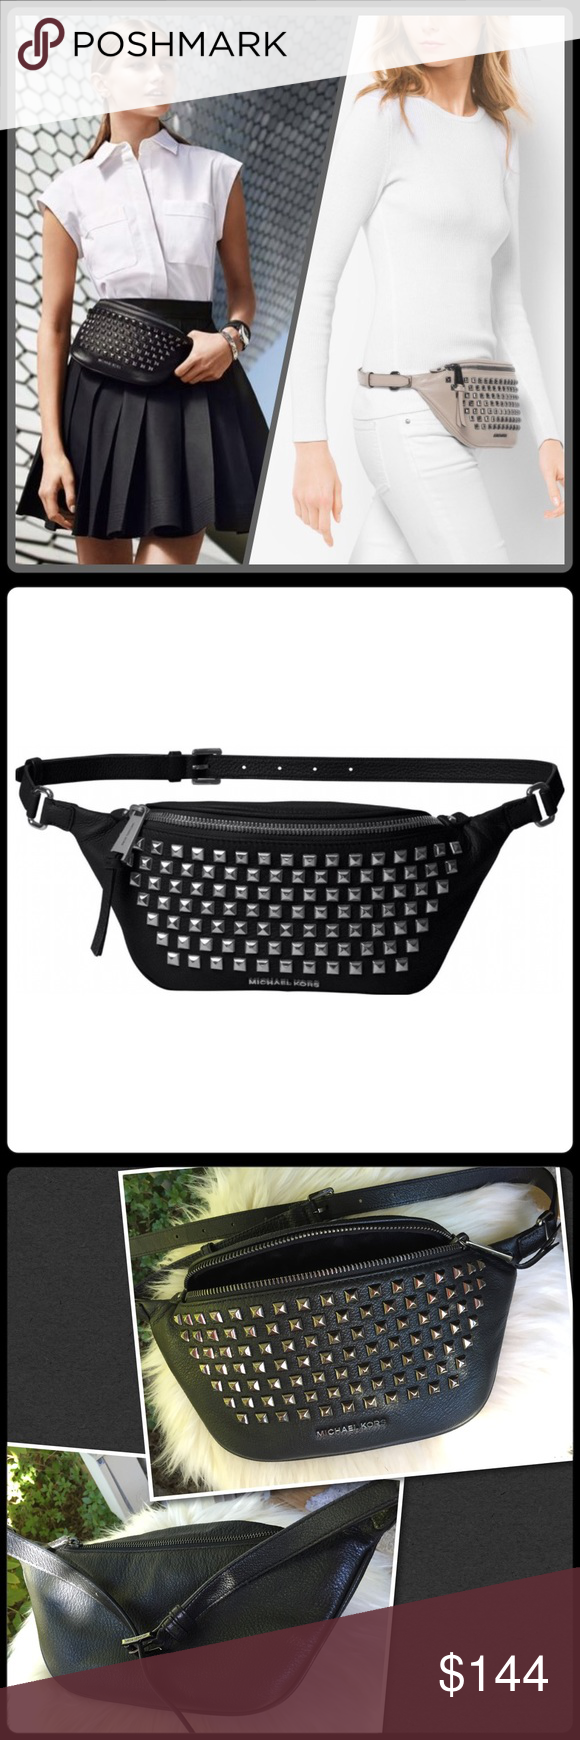 4829fefc6ca9 Michael Kors studded black fanny pack NWT. Rhea style Belt bag fanny pack. Black  leather with dark steel silver pyramid studs. Bag measures 12